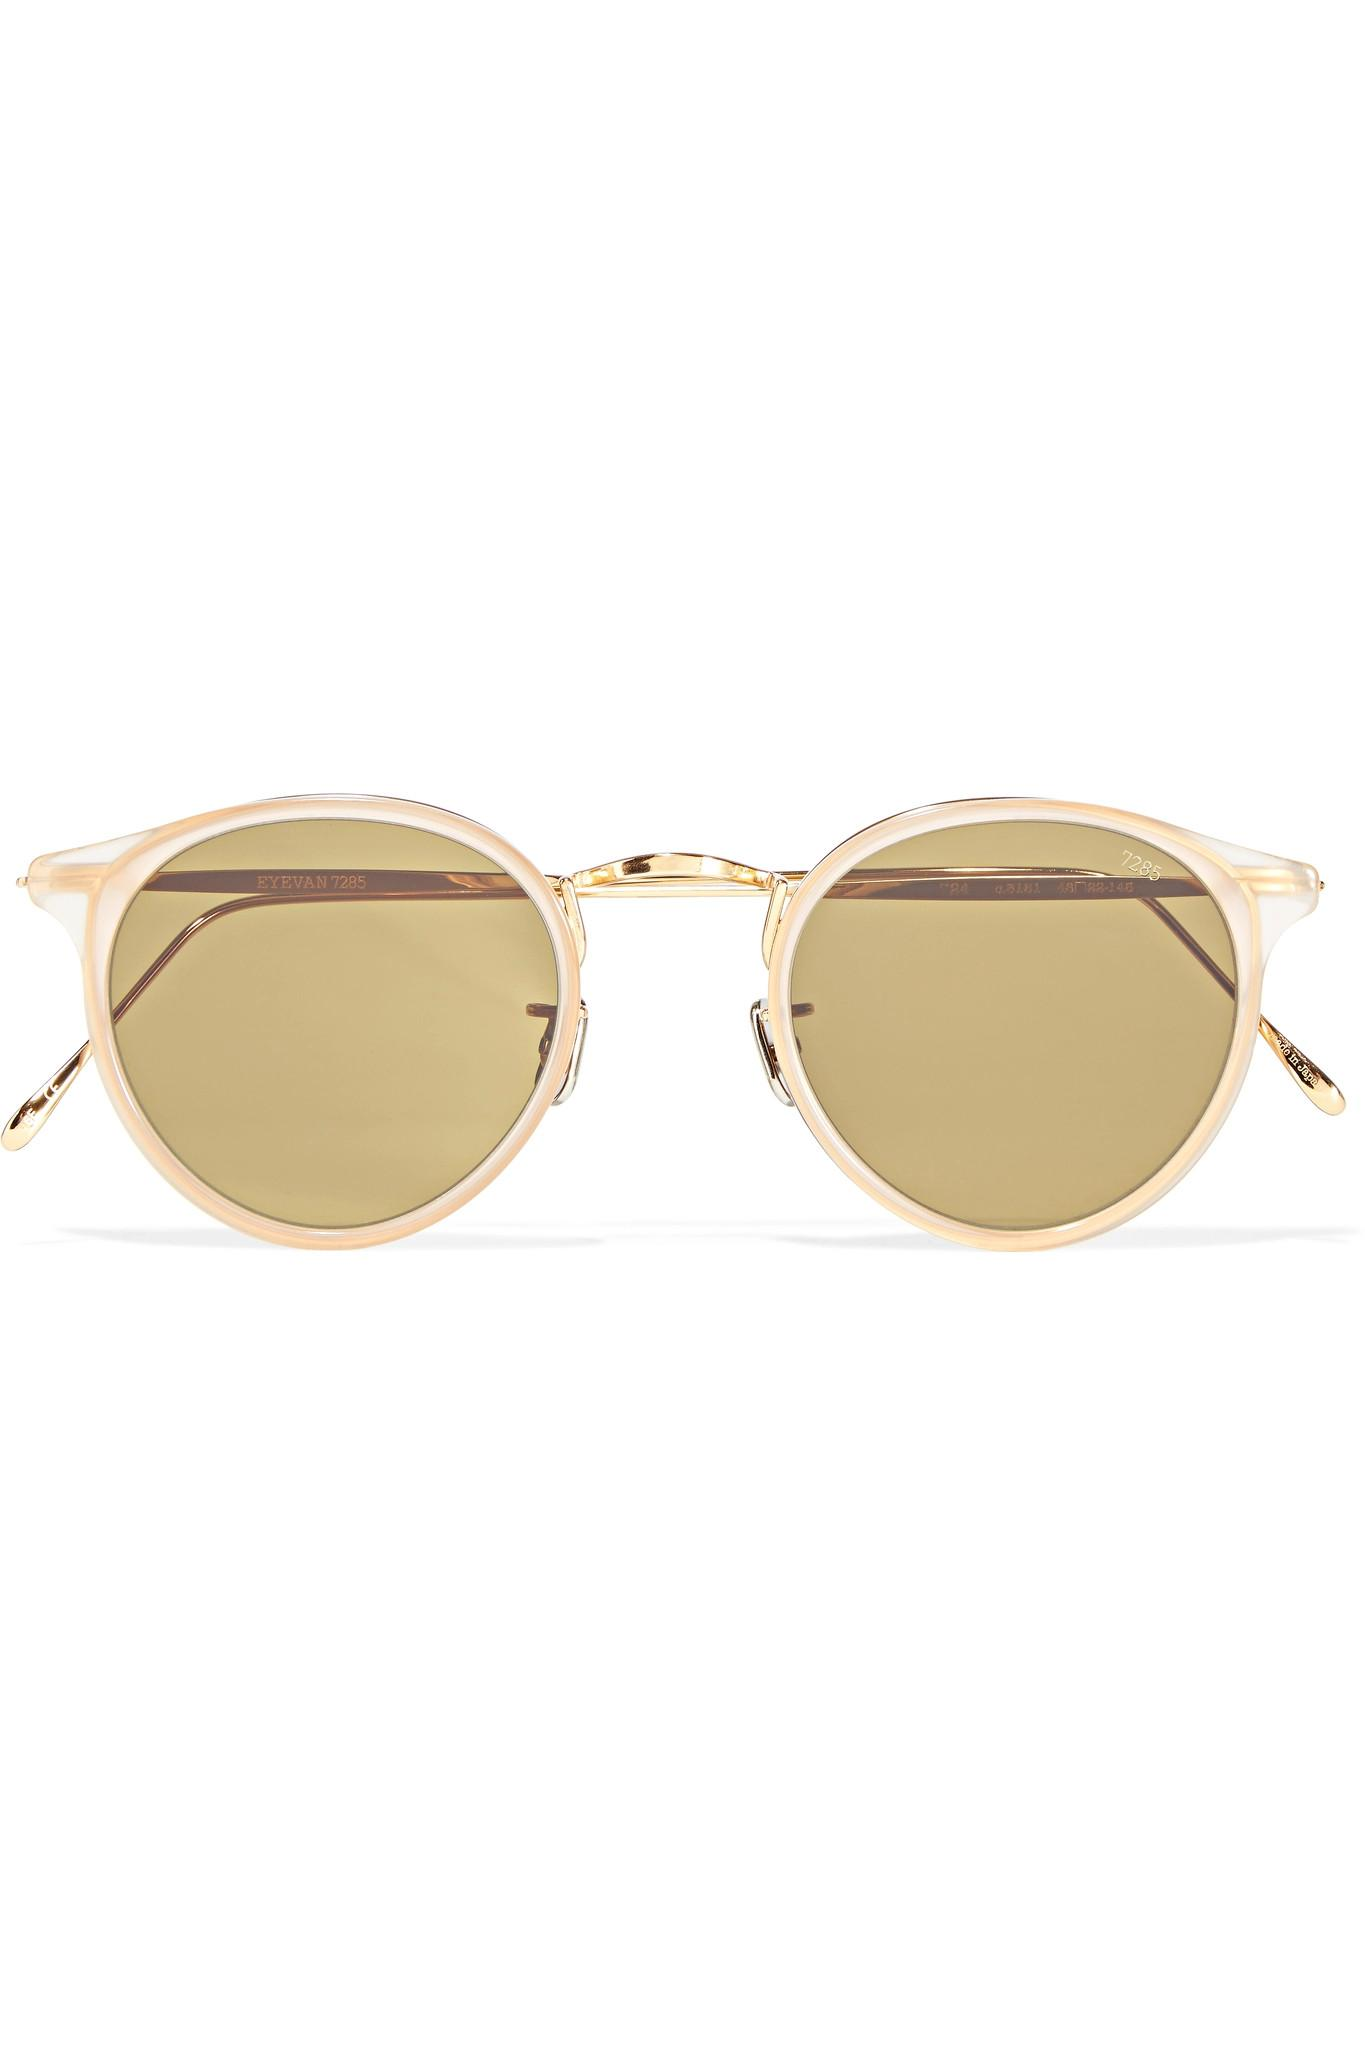 4fb3a4c202 Lyst - Eyevan 7285 Round-frame Acetate And Gold-tone Sunglasses in ...